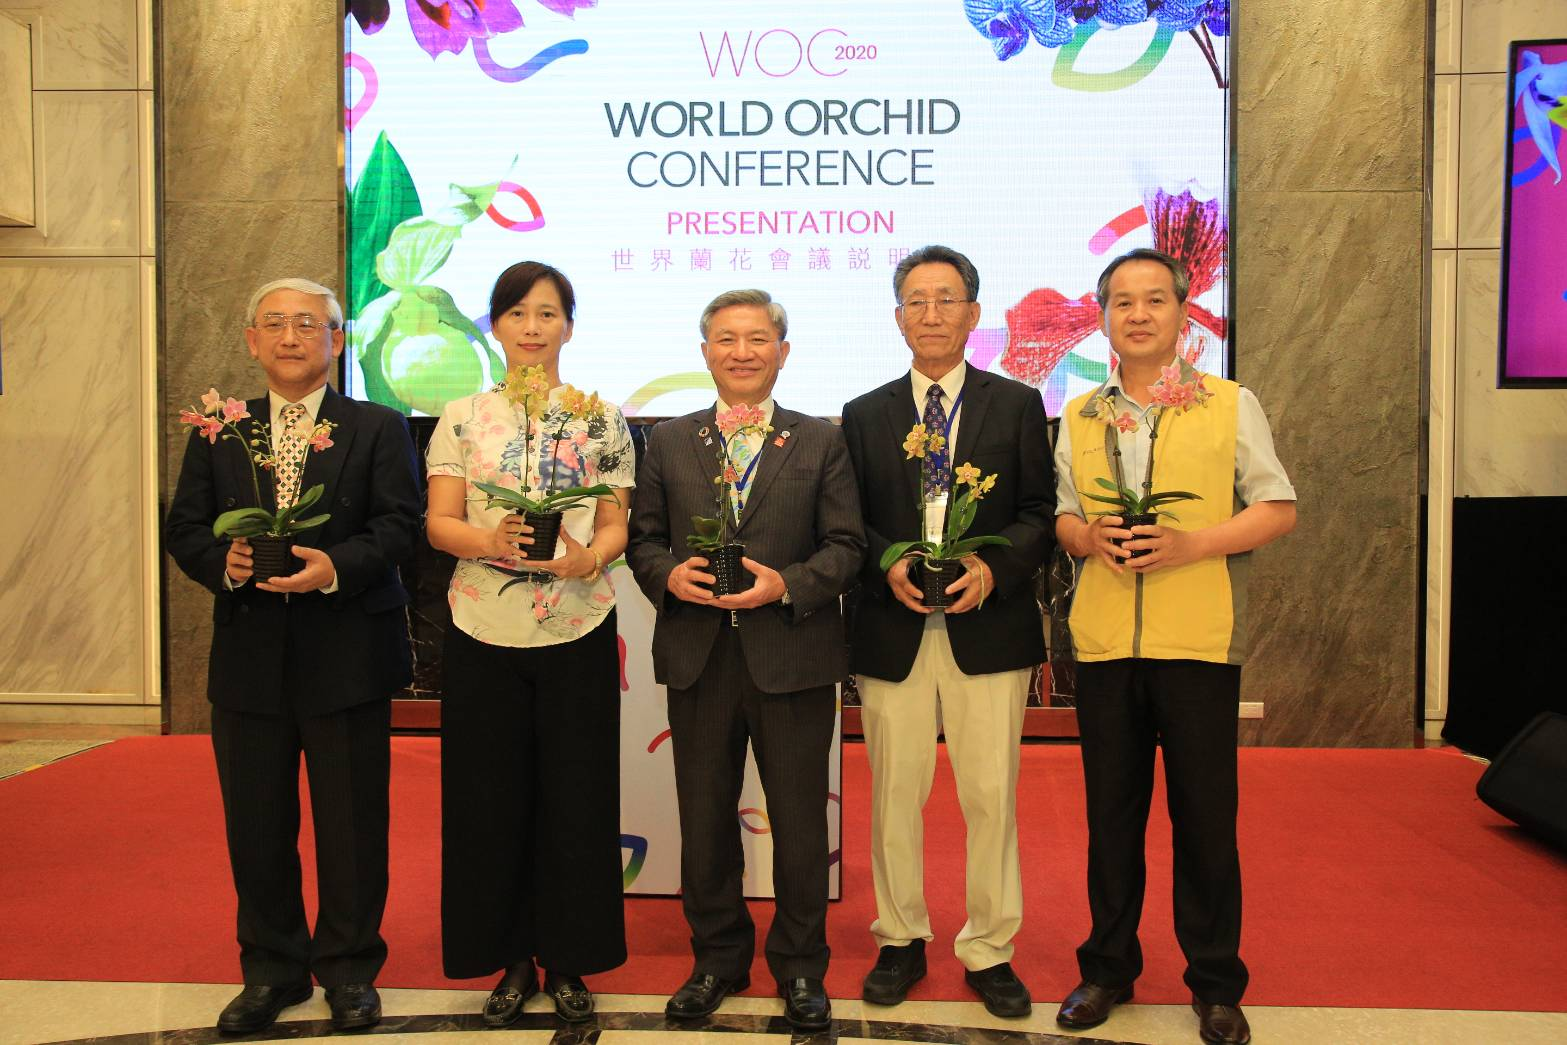 2020 World Orchid Conference will be held in Taichung. Deputy Mayor Chang invited international friends to join this event.